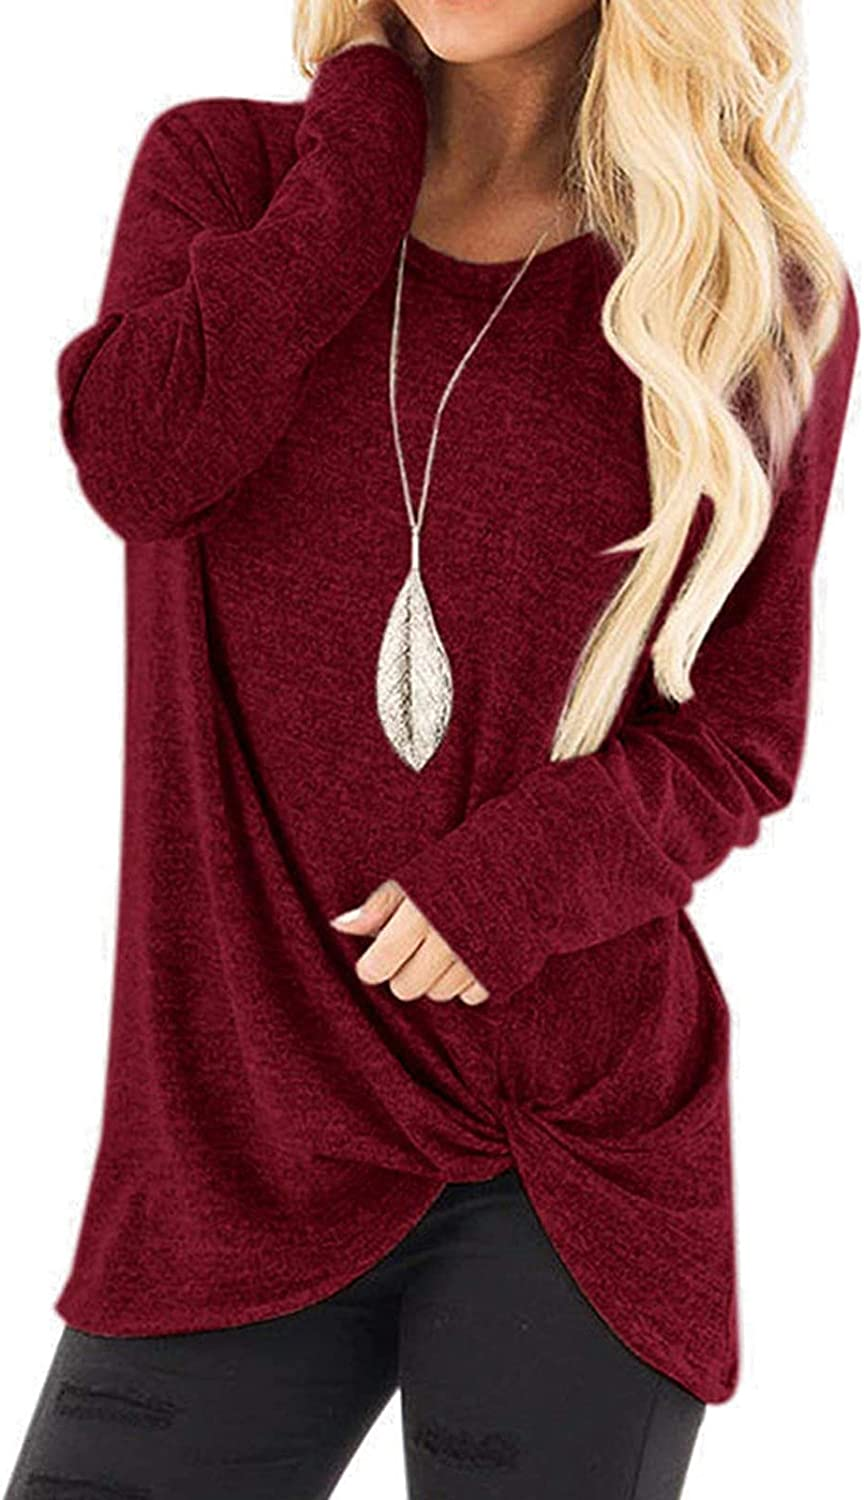 Long Sleeve Shirts for Women to Wear with Leggings Casual Crewneck Solid Color Loose Long Blouses T Shirts Sweatshirts